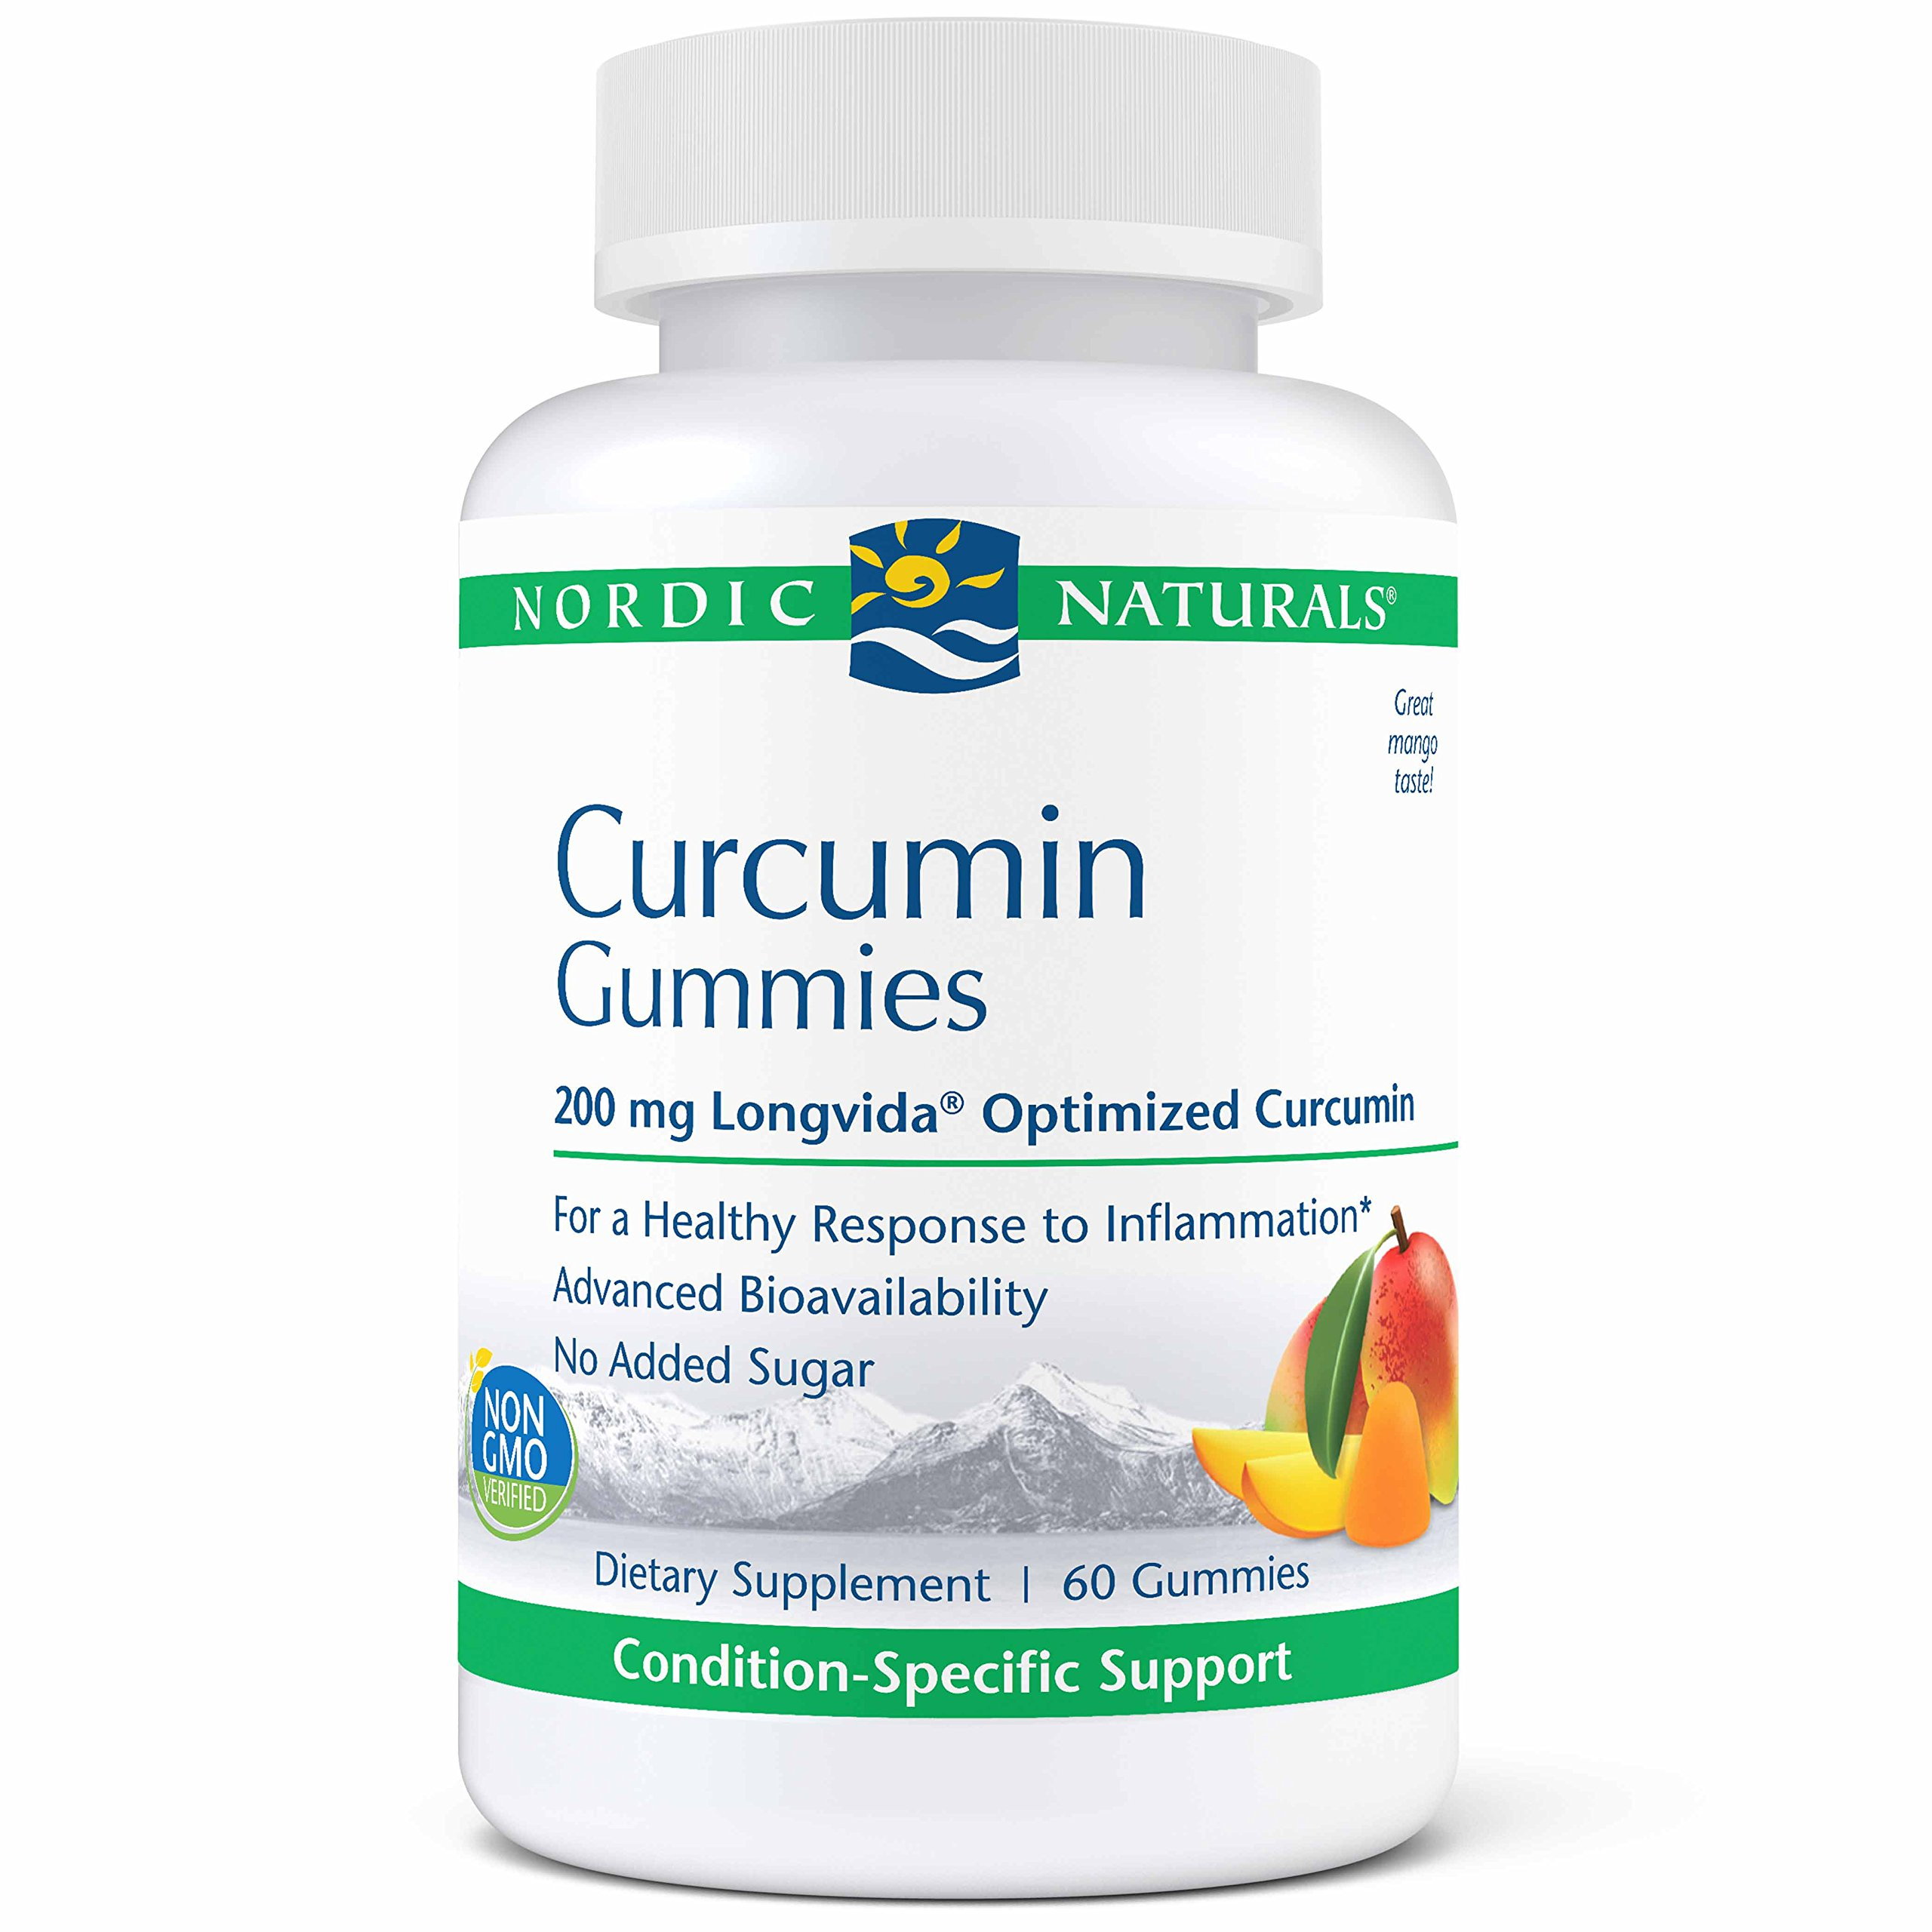 Nordic Naturals Pro Curcumin Gummies - 200mg Longvida Optimized Curcumin, Support for Nervous System and Inflammation Response, Cardiovascular, Joint and Immune Health, Mango Flavor, 60 Gummies